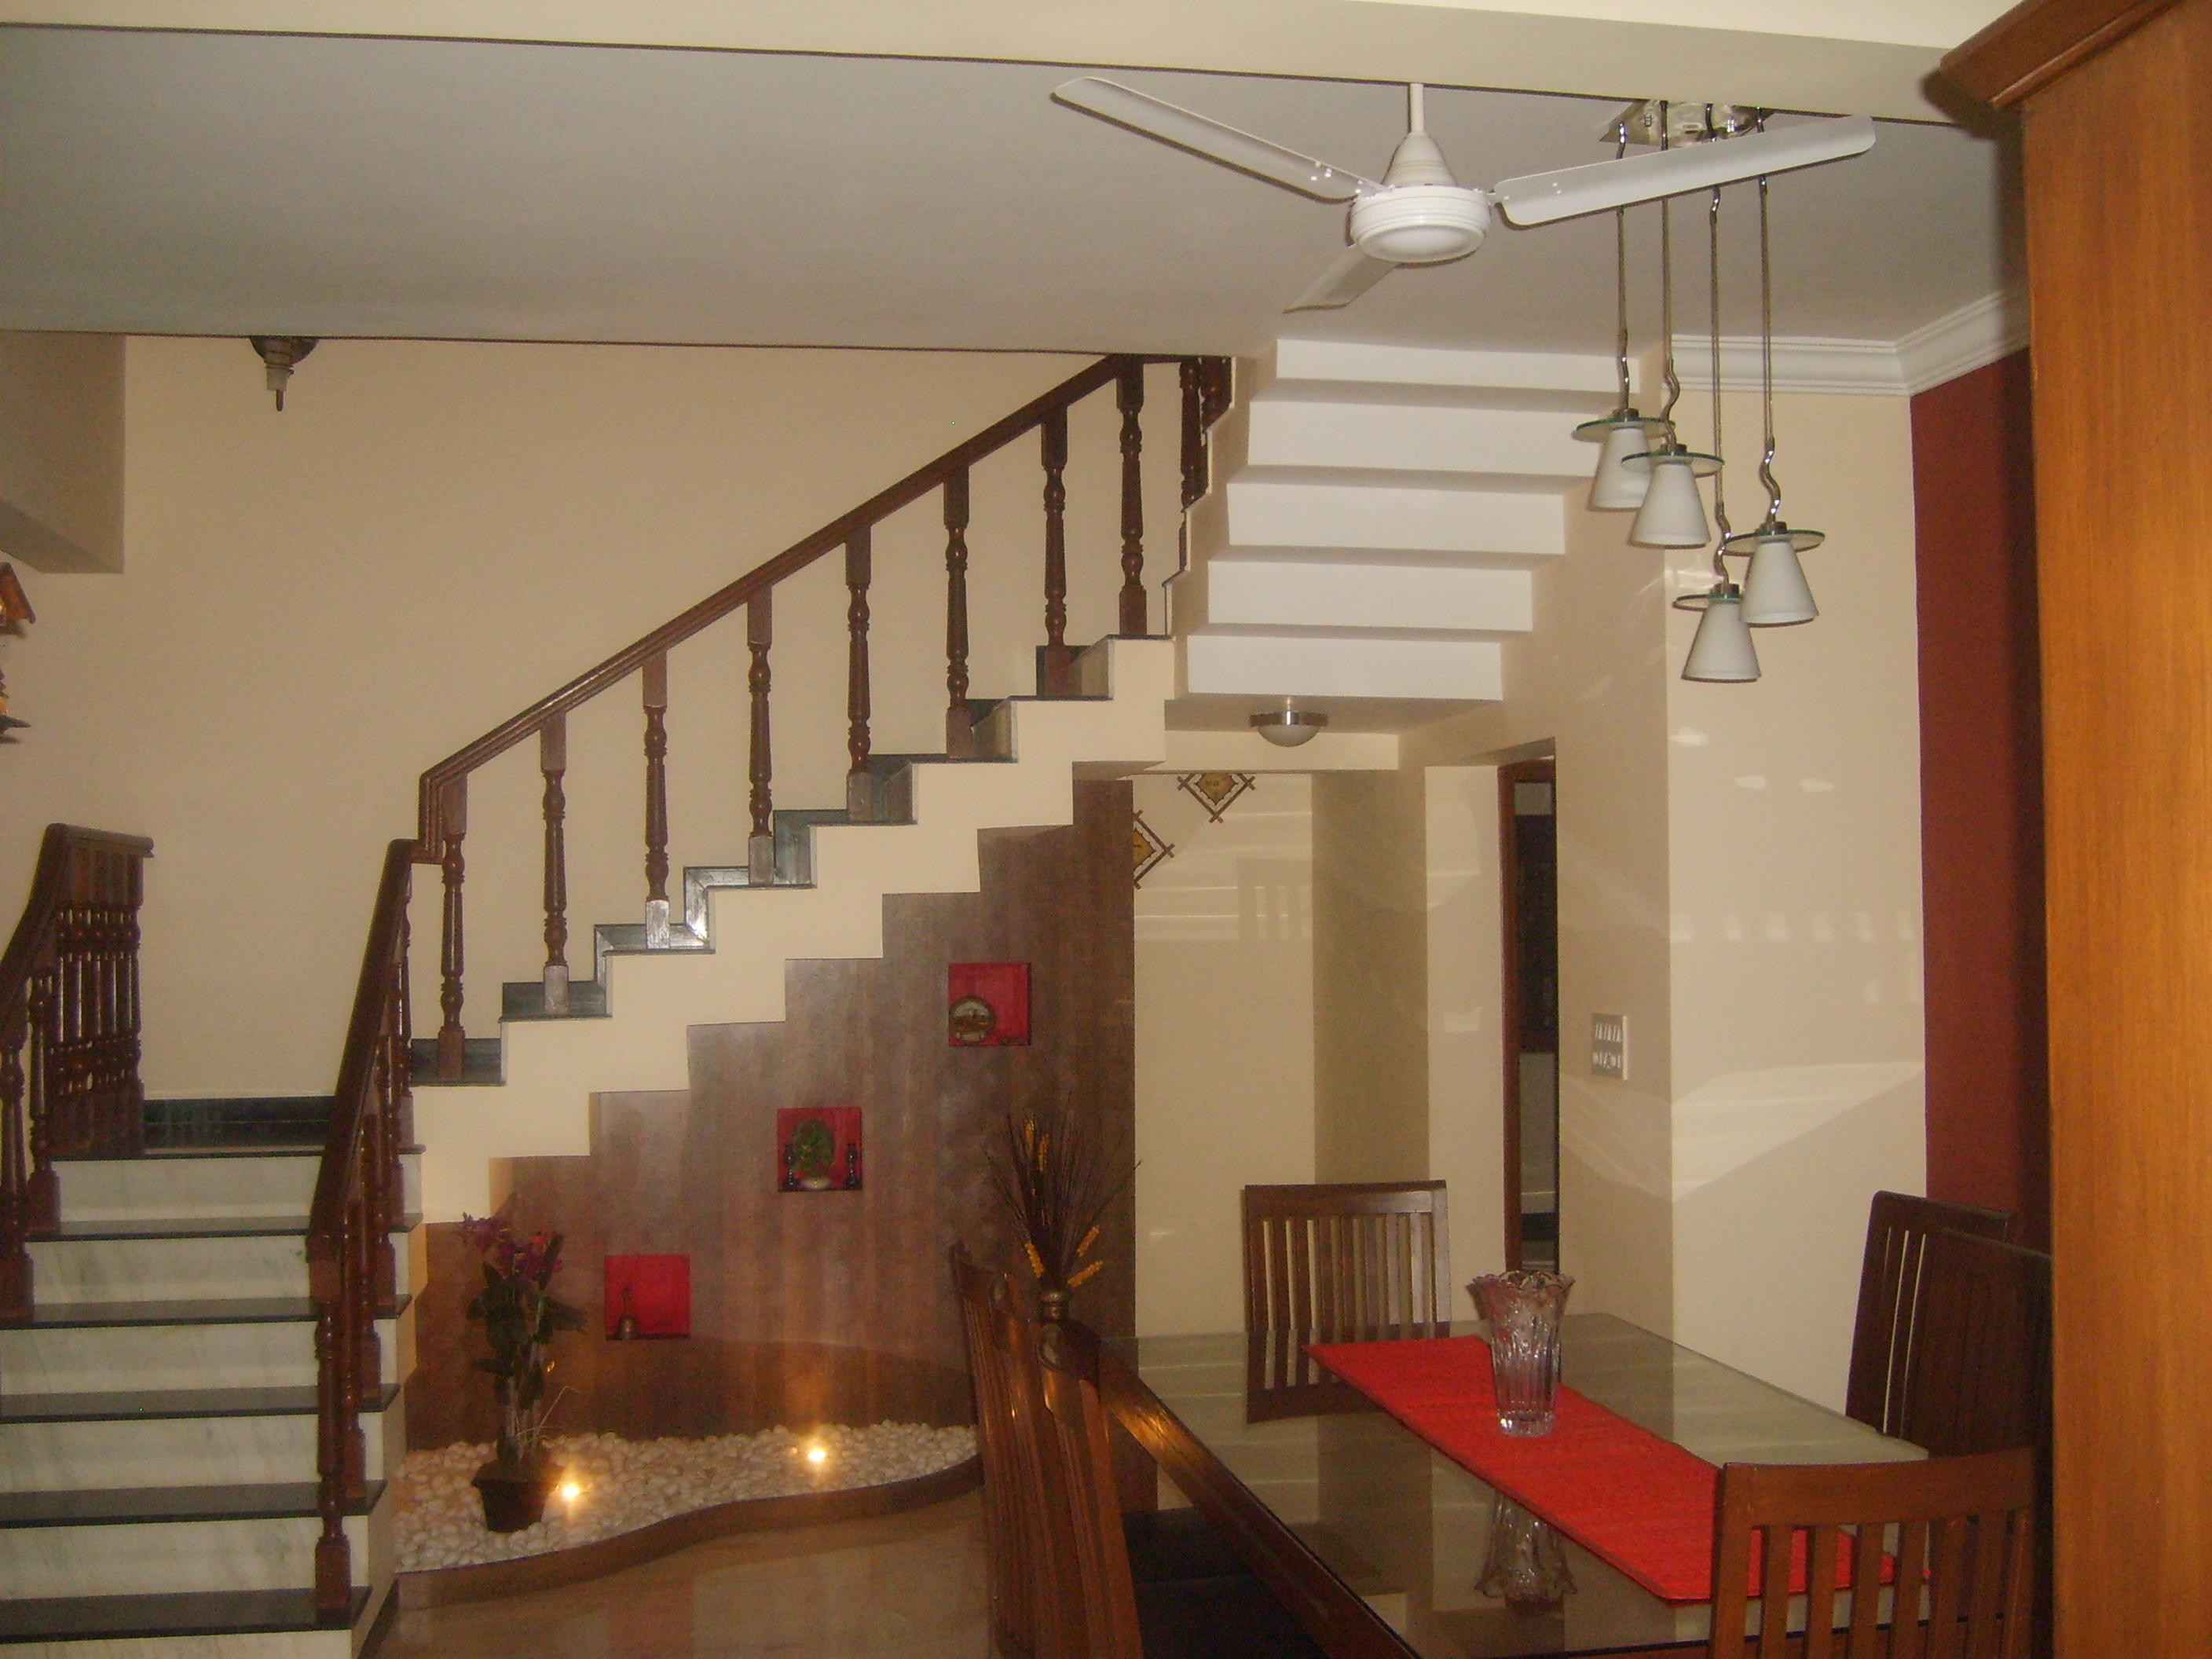 Staircase design gharexpert for Window design for house in india